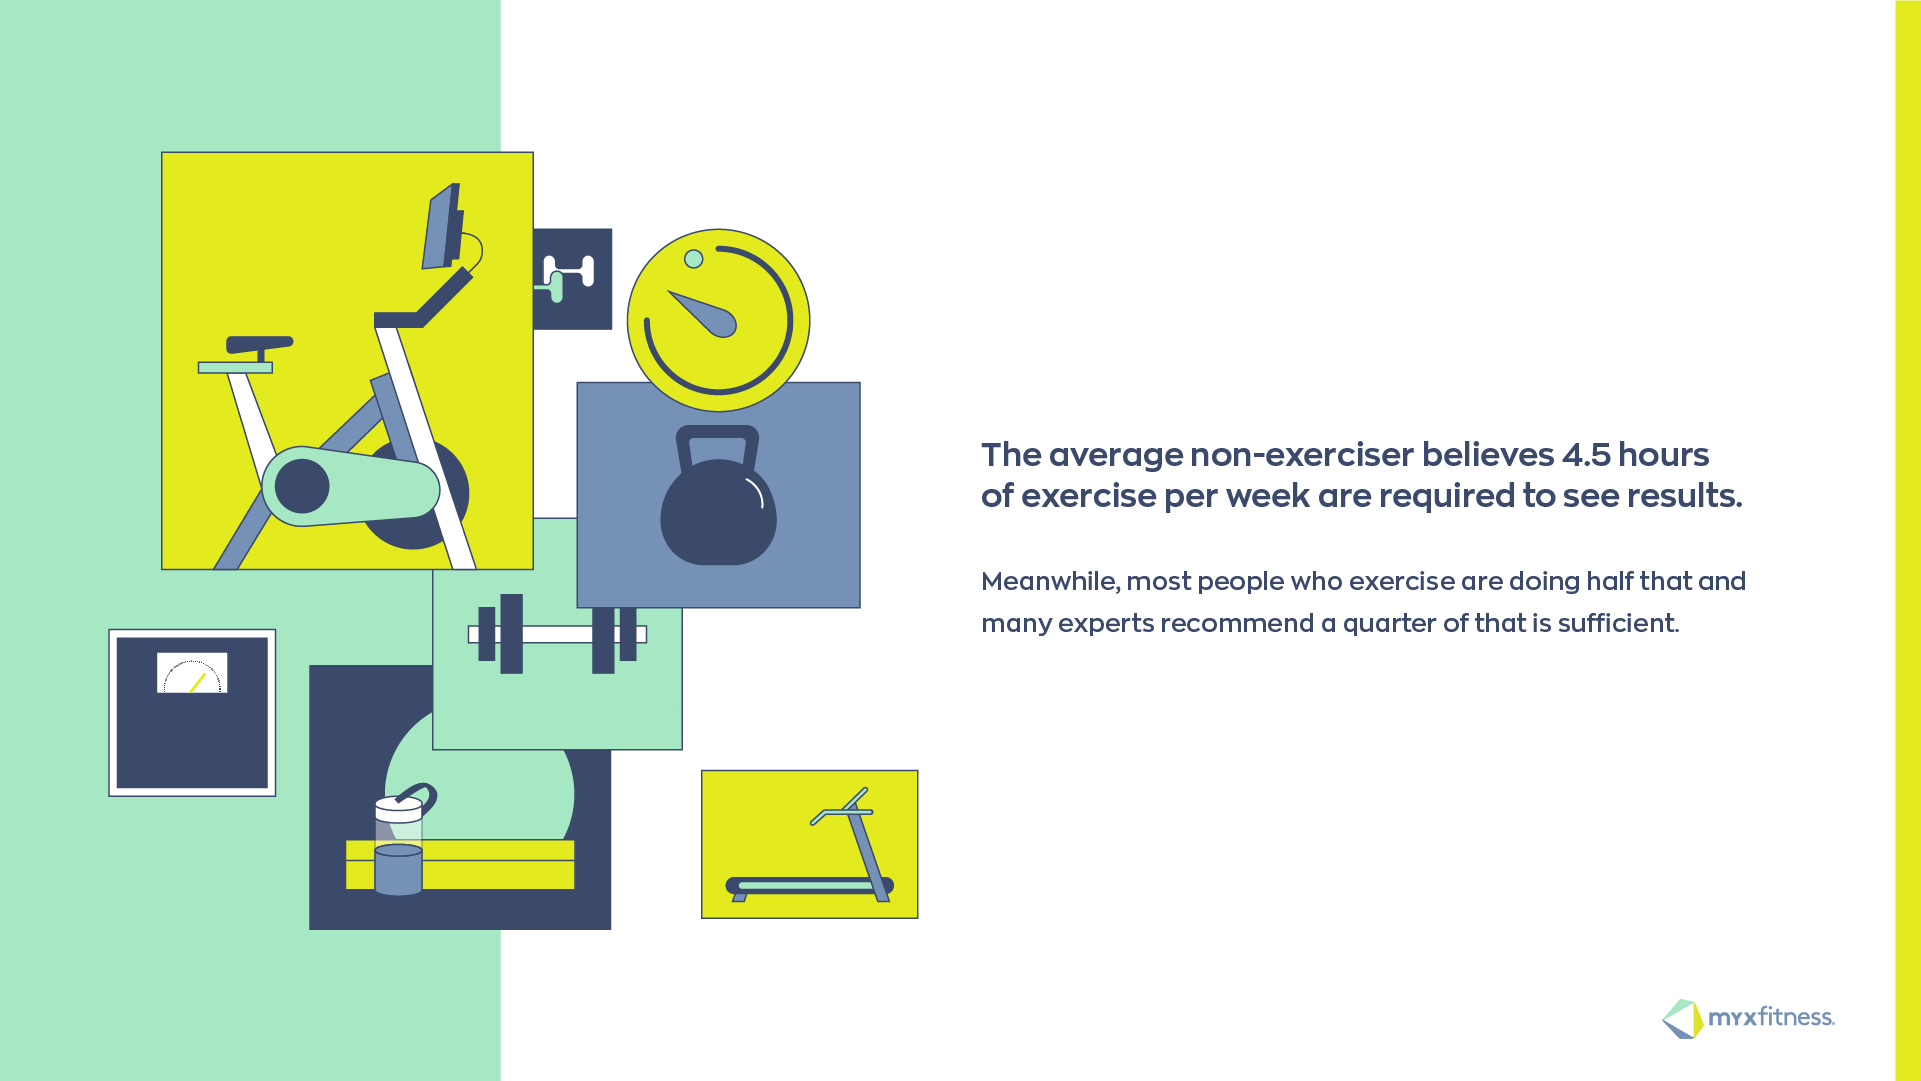 The average non-exerciser believes 4.5 hours of exercise per week are required to see results. Meanwhile most people who exercise are doing half that and many experts recommend a quarter of that is sufficient.